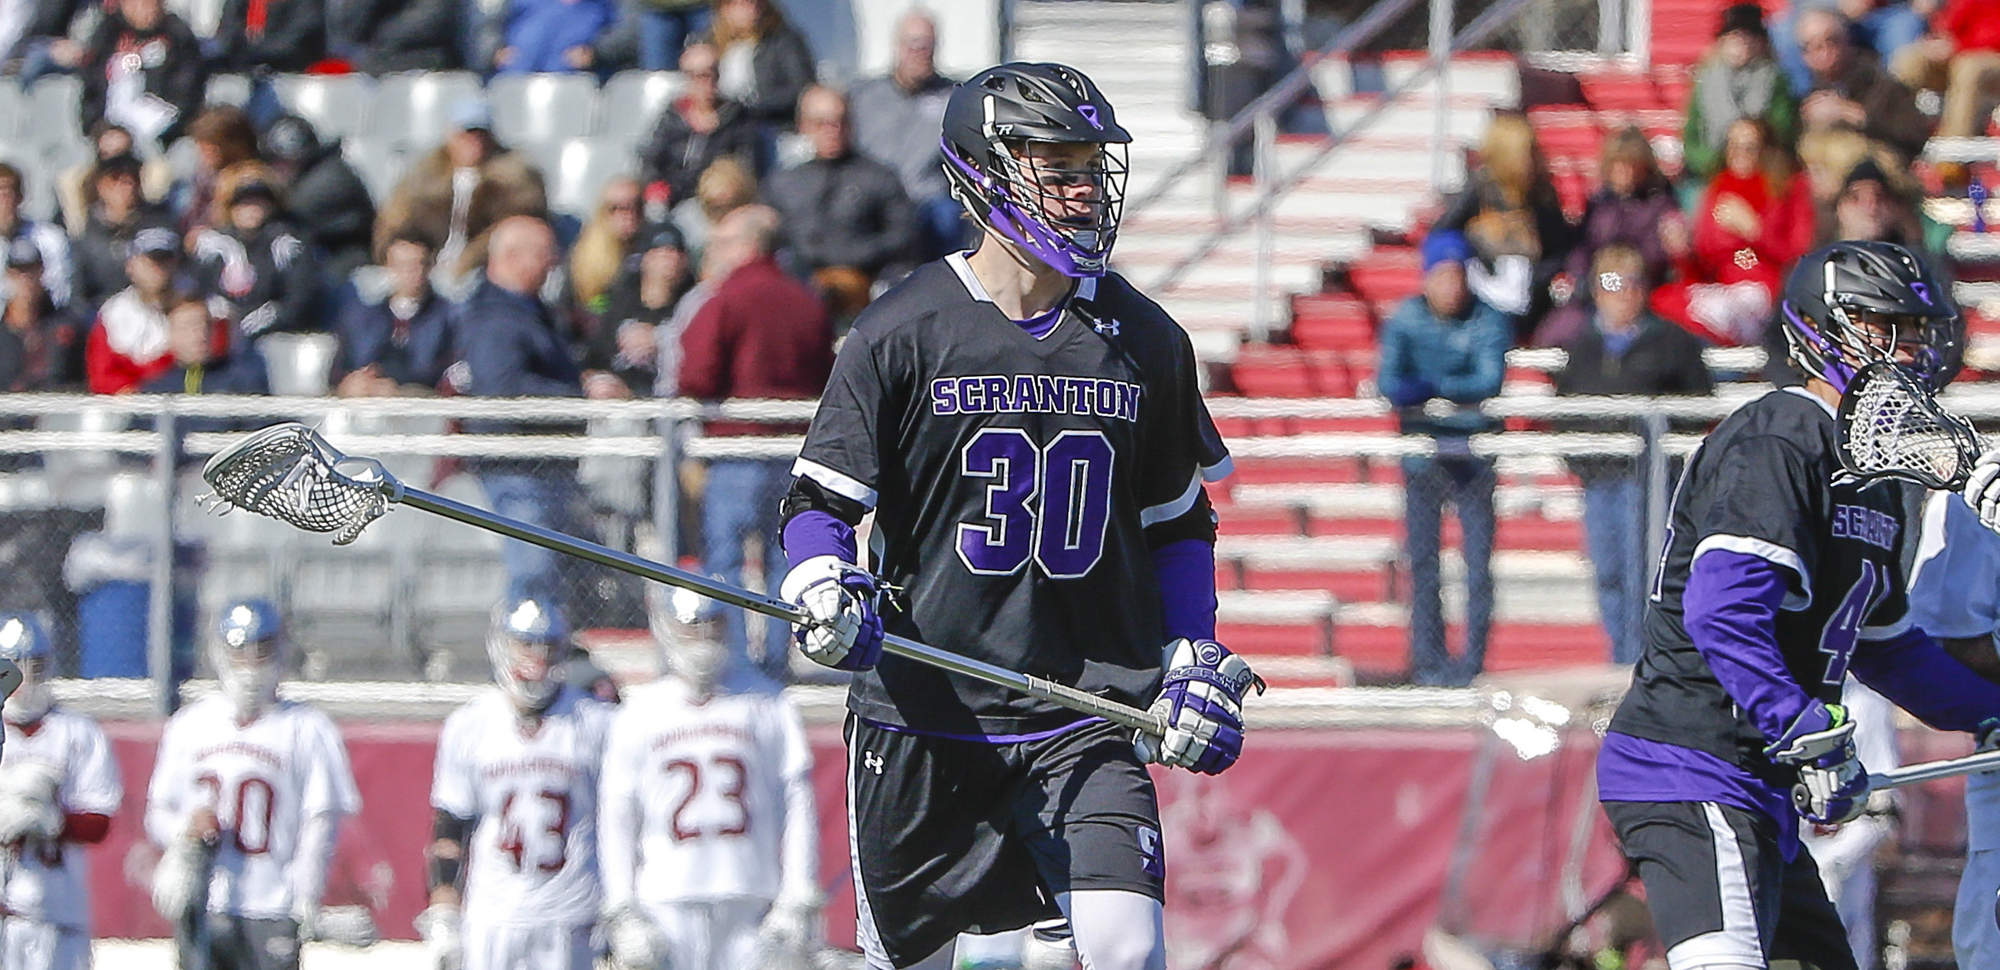 Senior defender Sean Ebert had three ground balls in the Royals' loss at Cortland State on Wednesday.